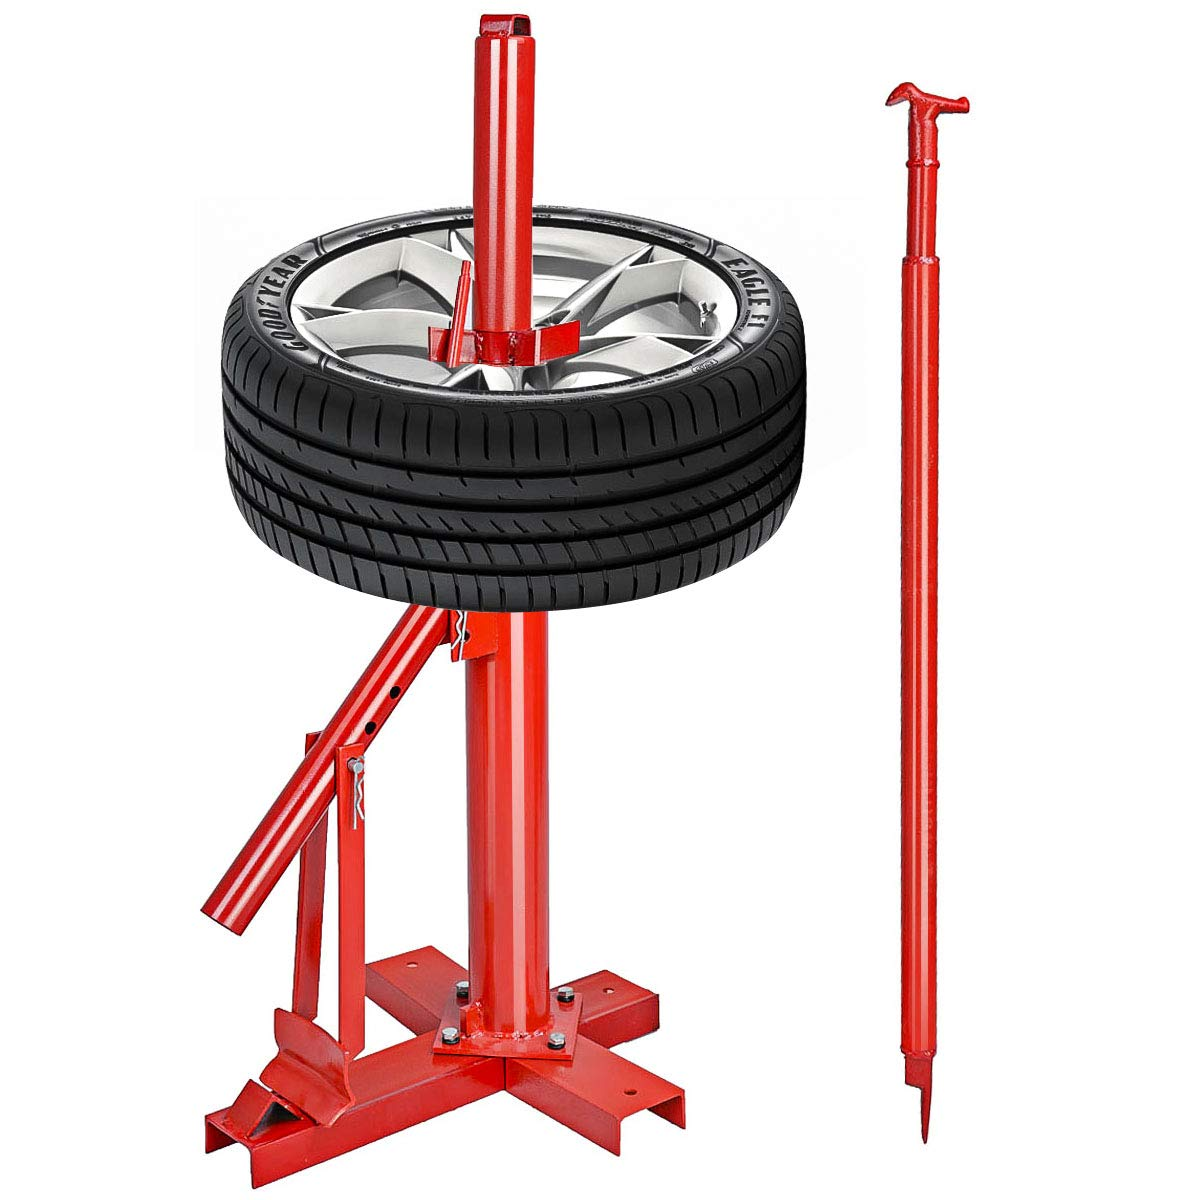 Goplus Manual Portable Hand Tire Changer Bead Breaker Tool Mounting Home Shop Auto by Goplus (Image #6)